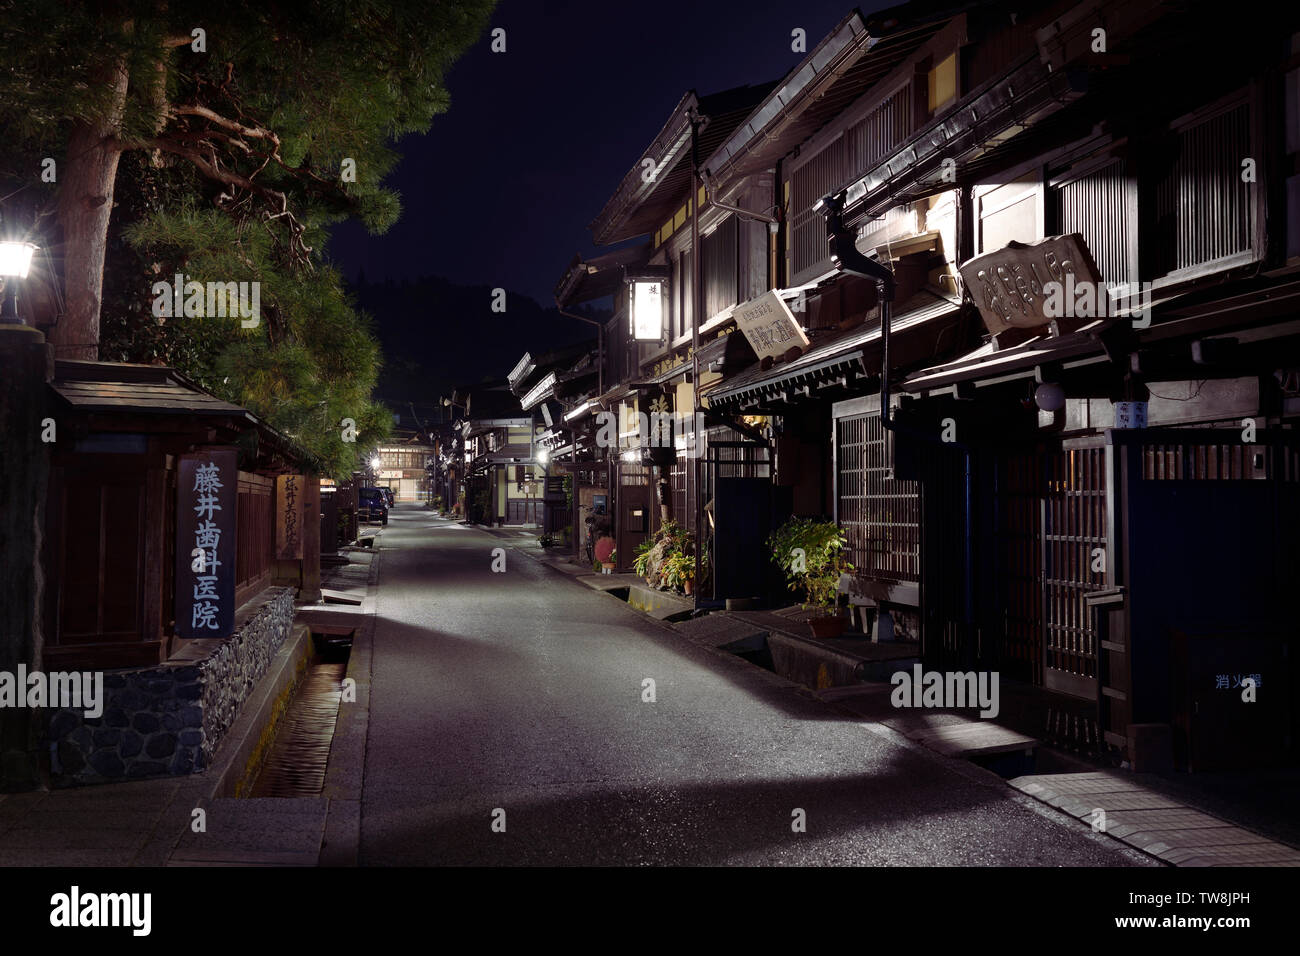 Kamisannomachi, old town in Takayama city at night with lit up street lights and shop signs. Hida-Takayama, Gifu prefecture, Japan travel photography - Stock Image